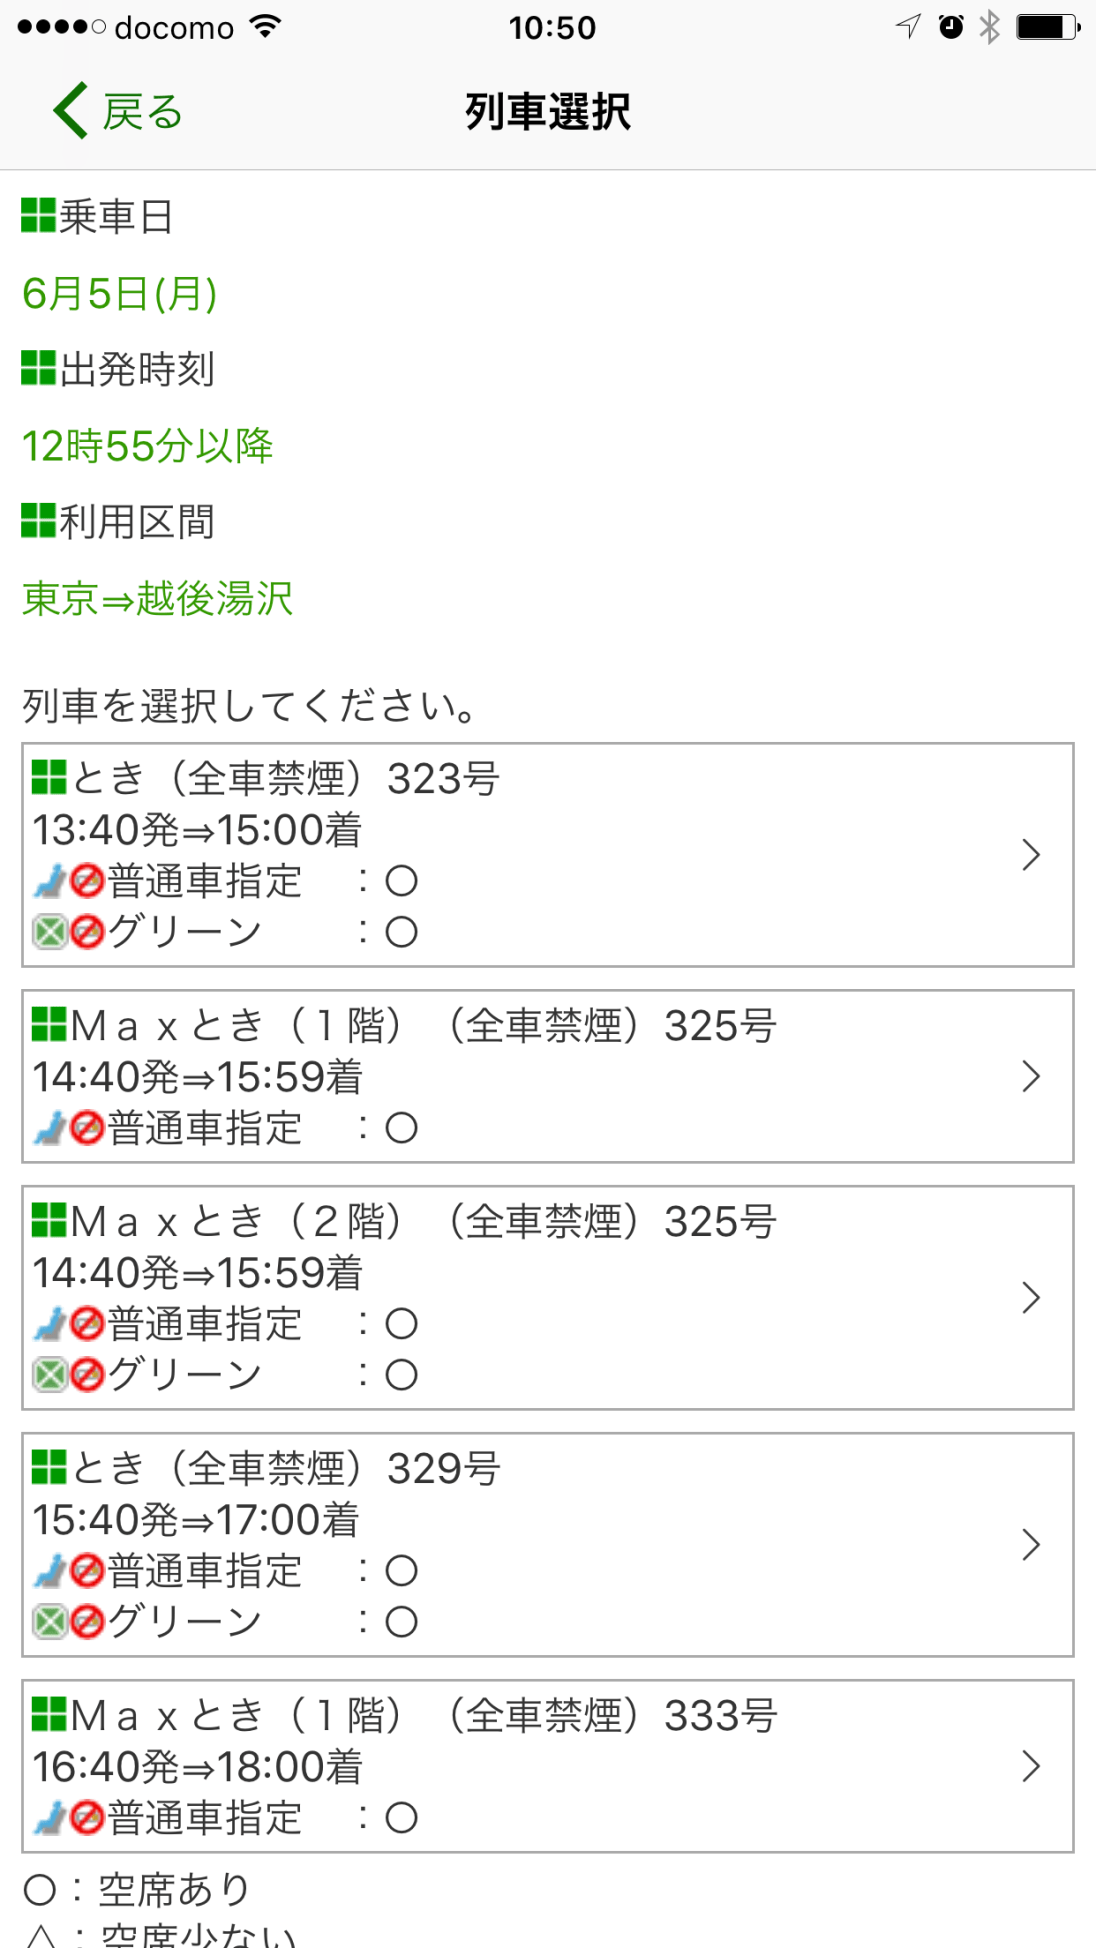 Select which Shinkansen you want from the list of candidates